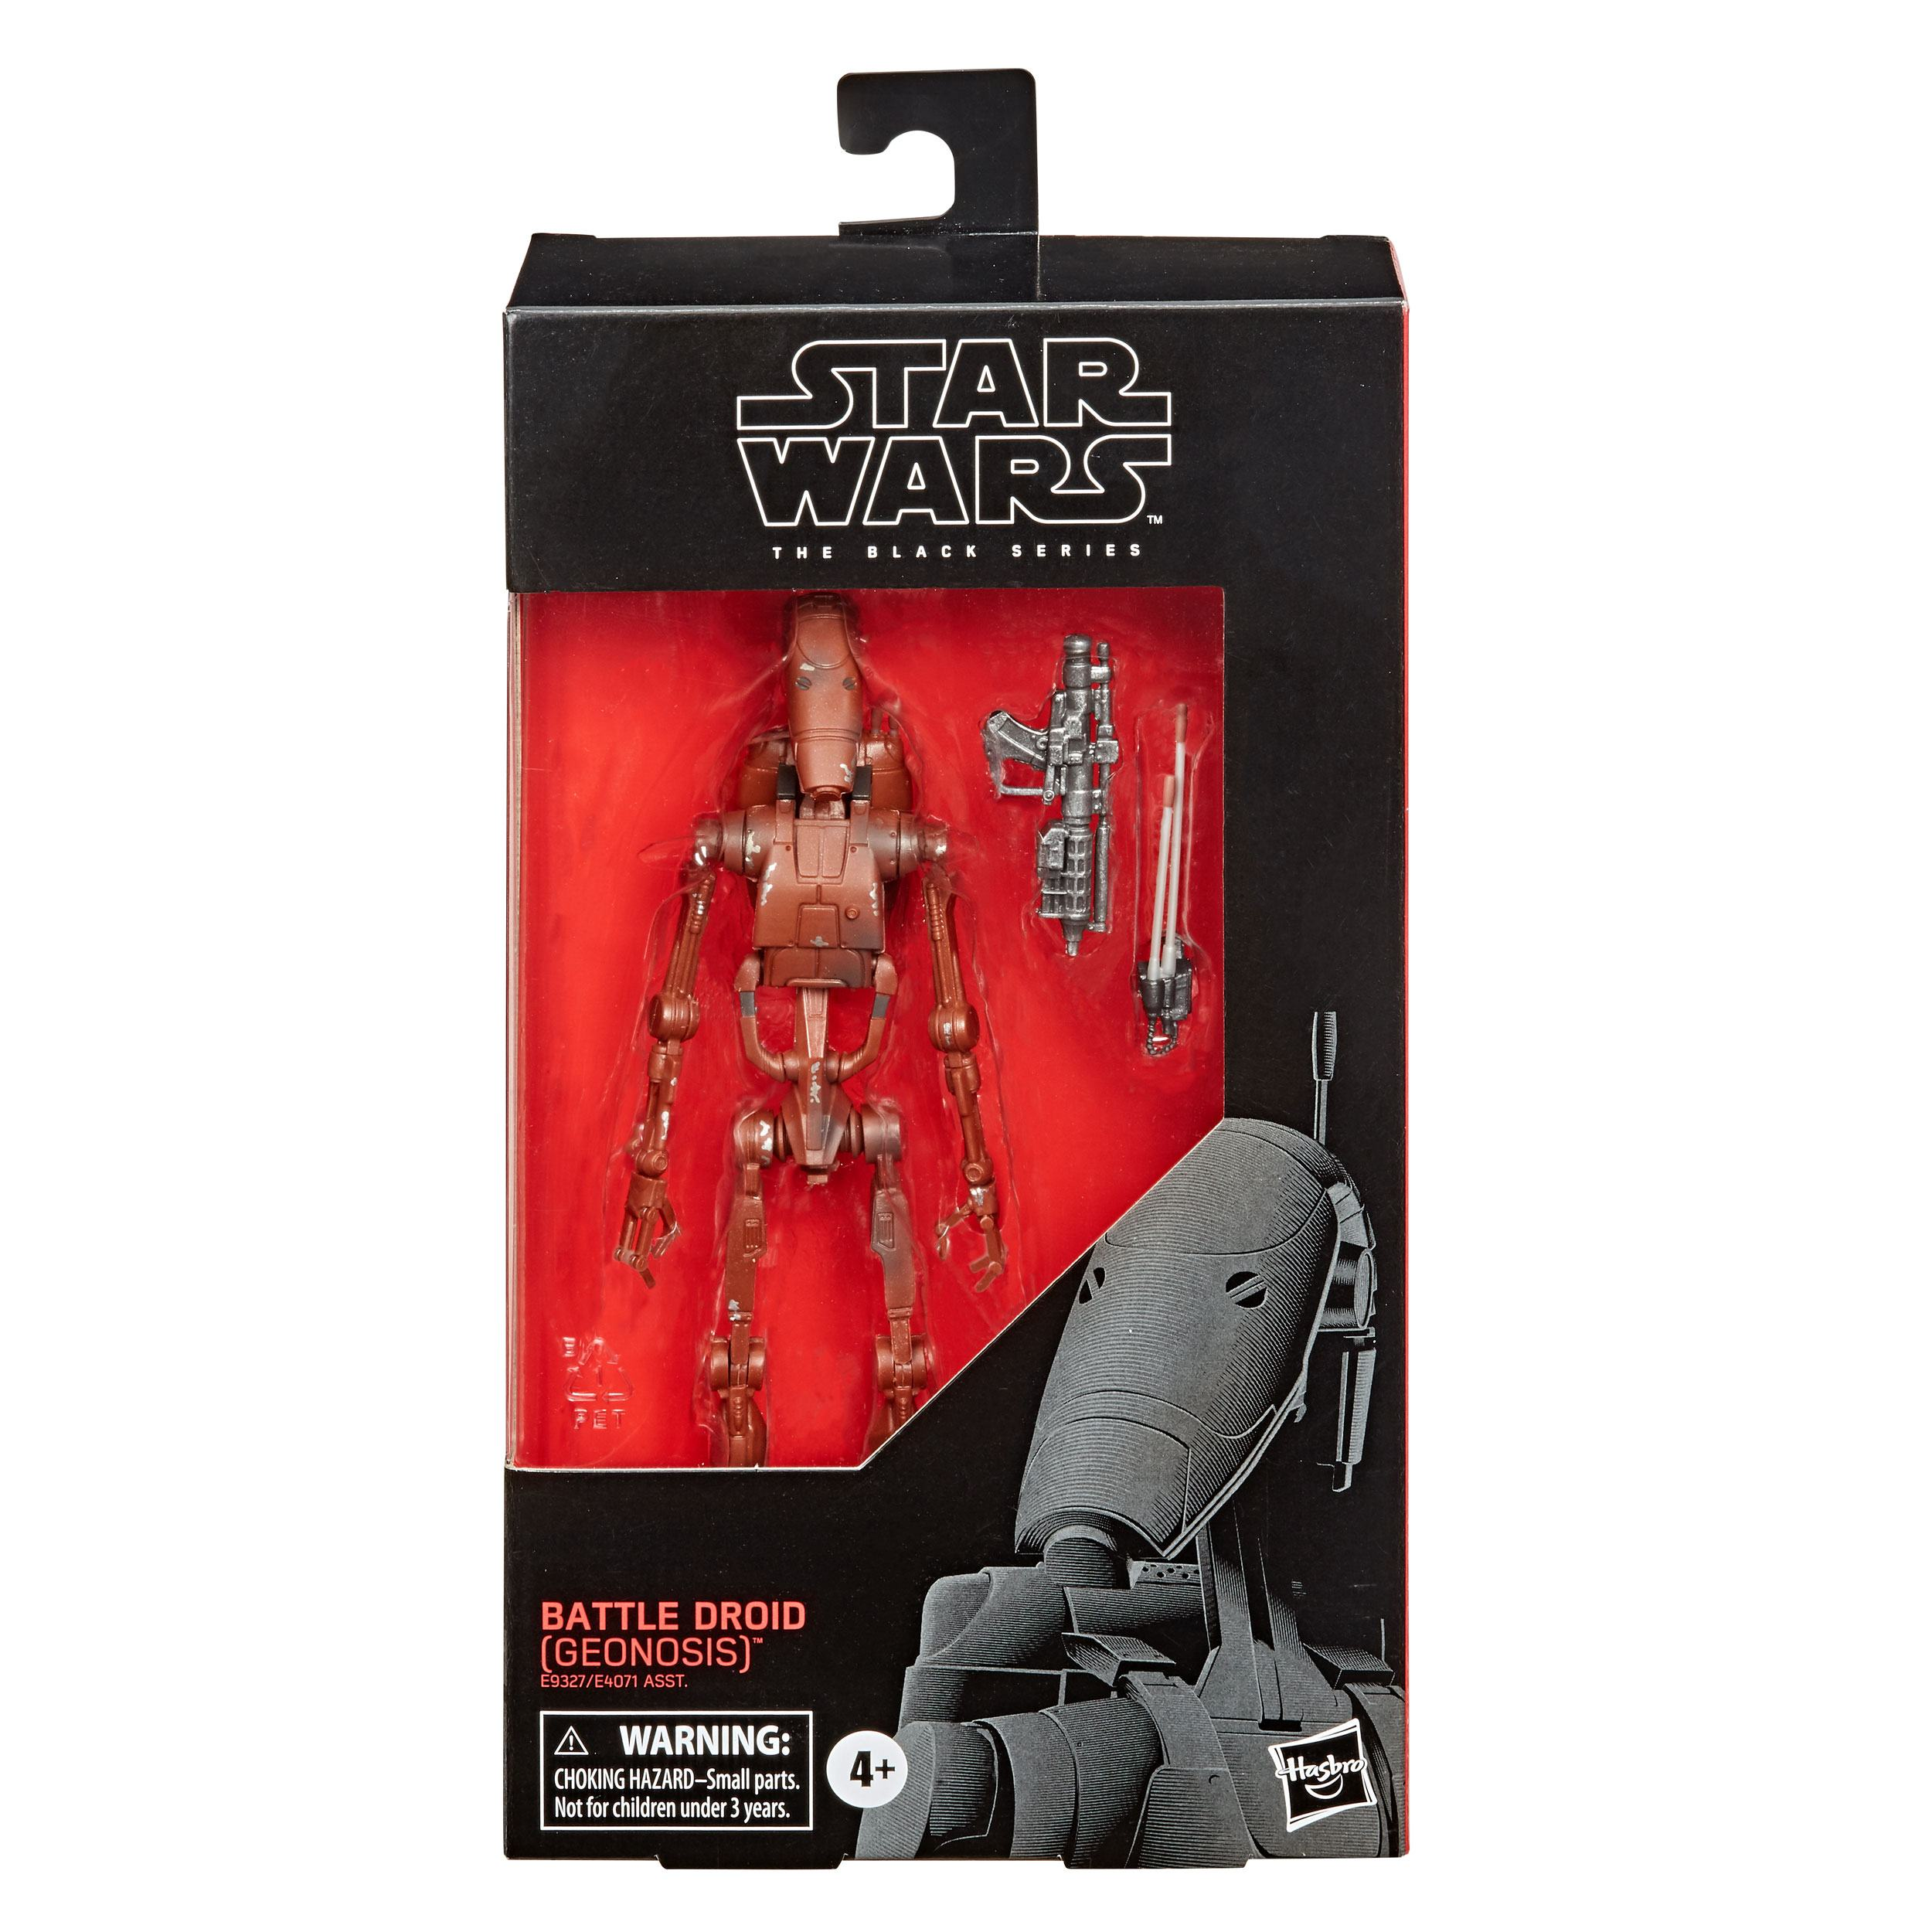 Star Wars The Black Series Battle Droid (Geonosis) Action Figure 15cm E9327 5010993731459